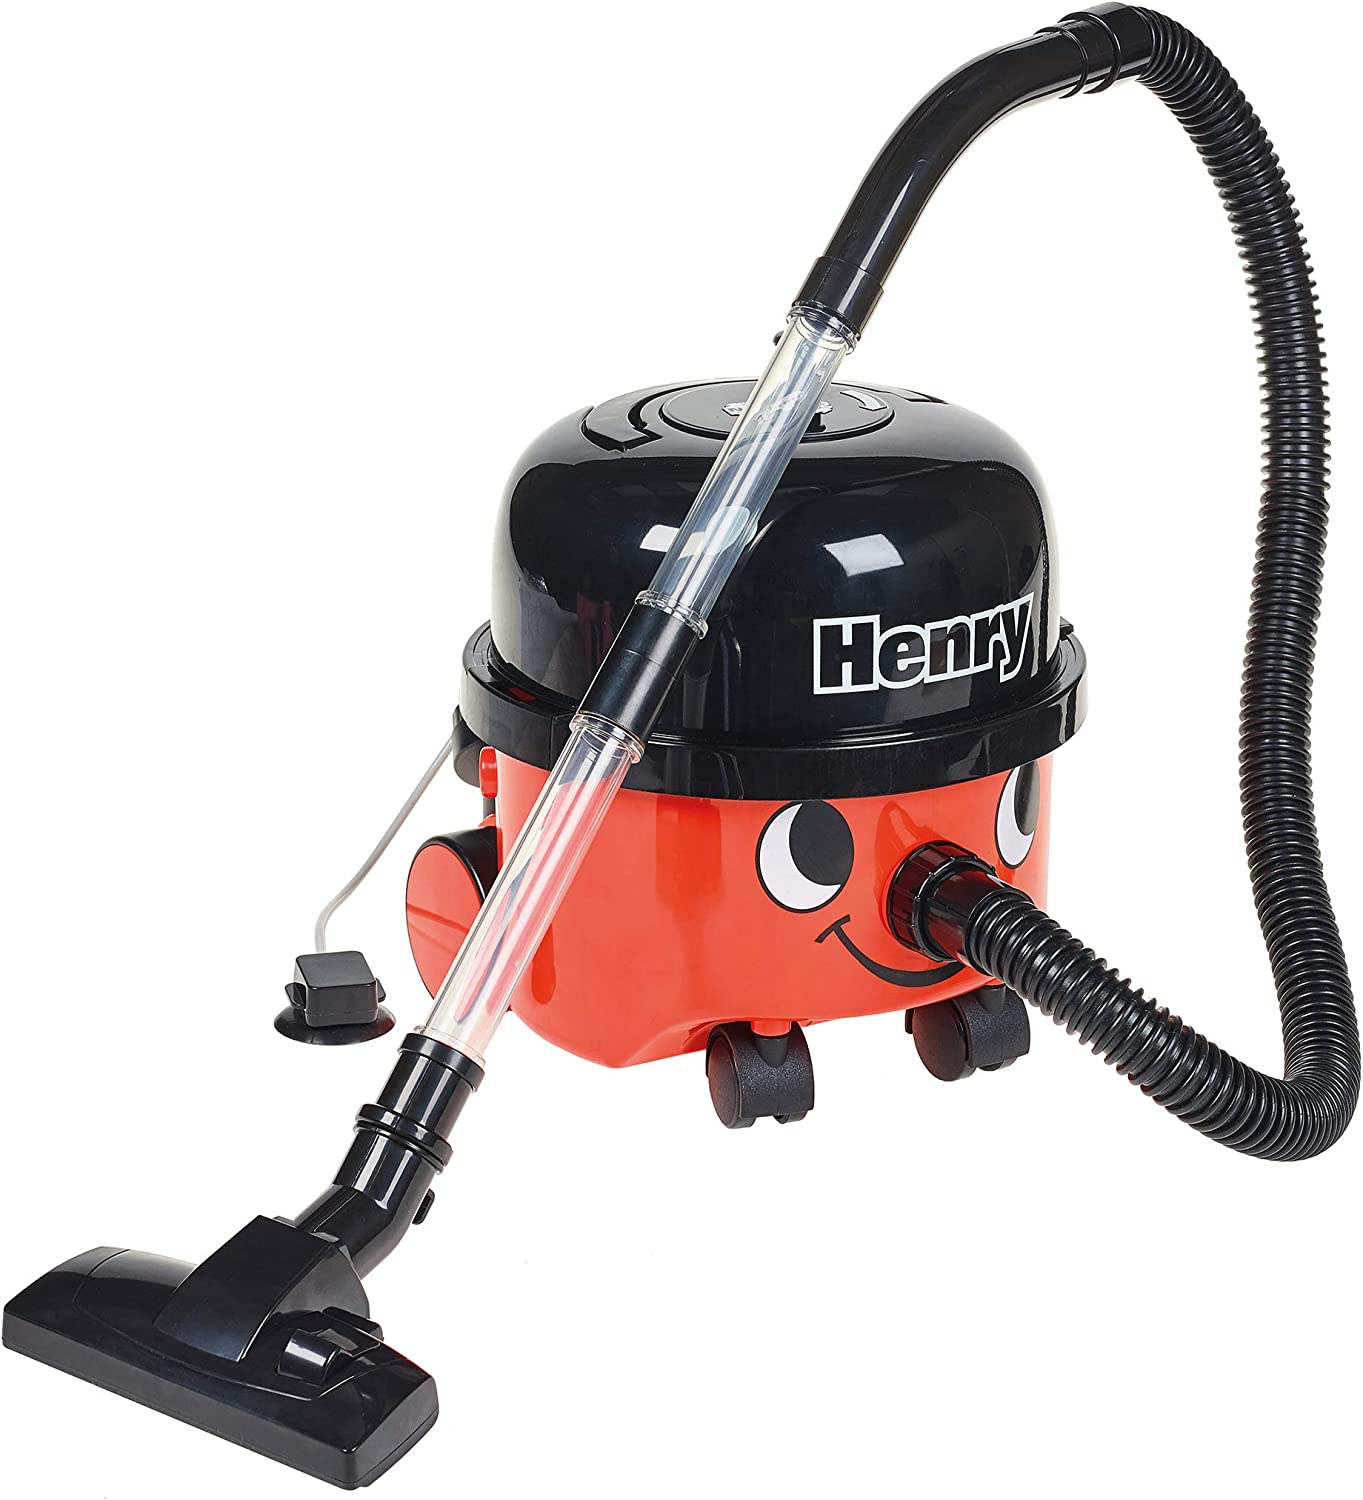 CASDON 728 Henry Vacuum Cleaner Toy, Red